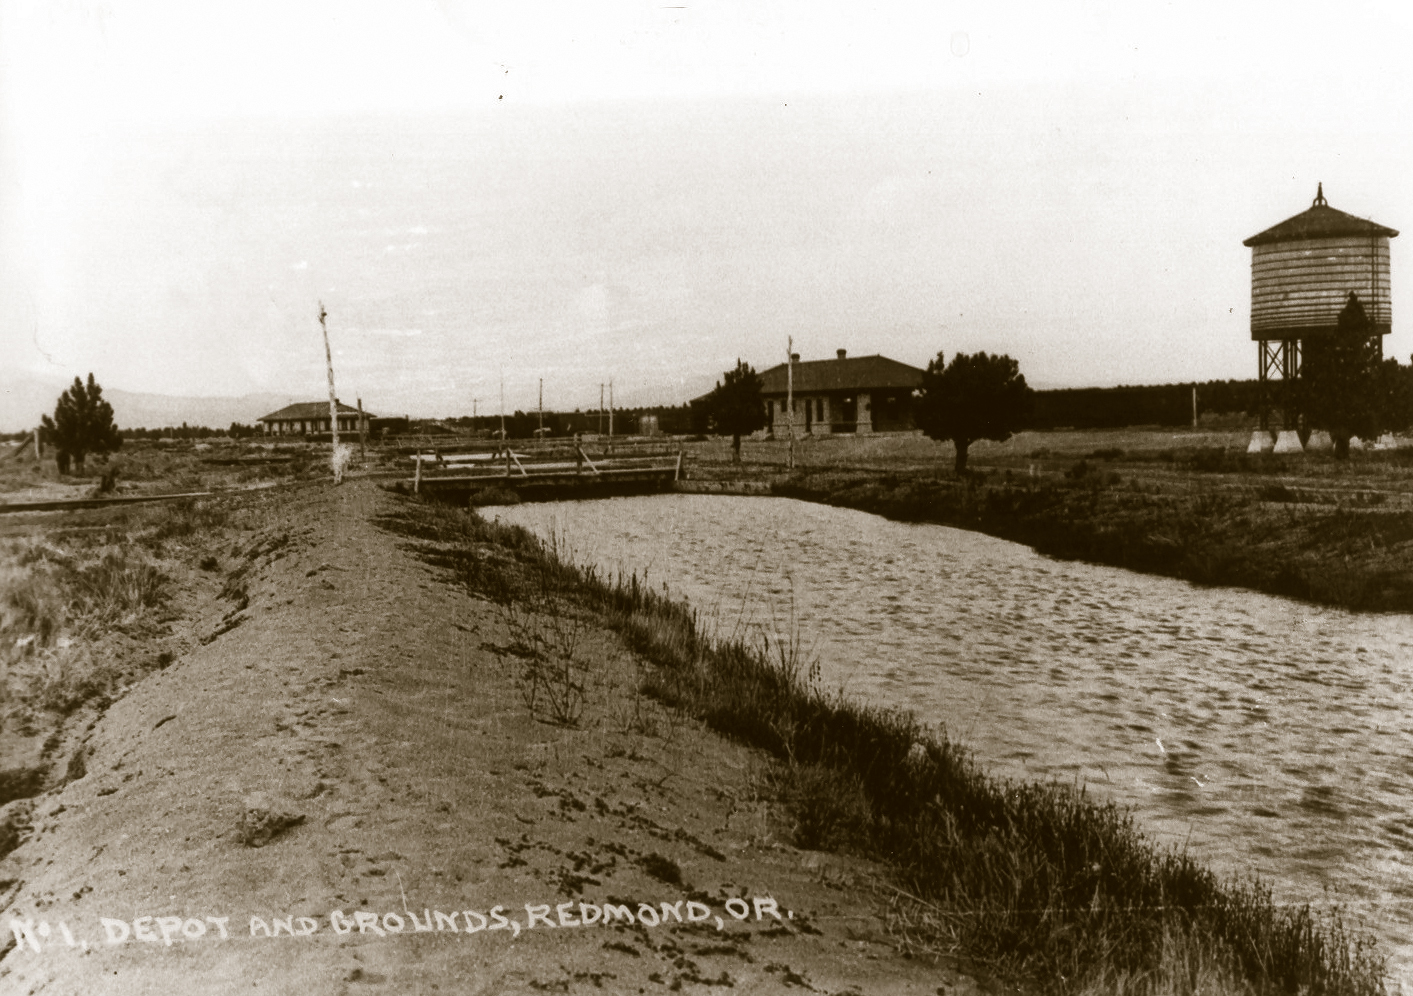 The 1894 Carey Act (allowing private development of irrigation systems on arid federal lands) and the construction of the railroad were key to Redmond's success.